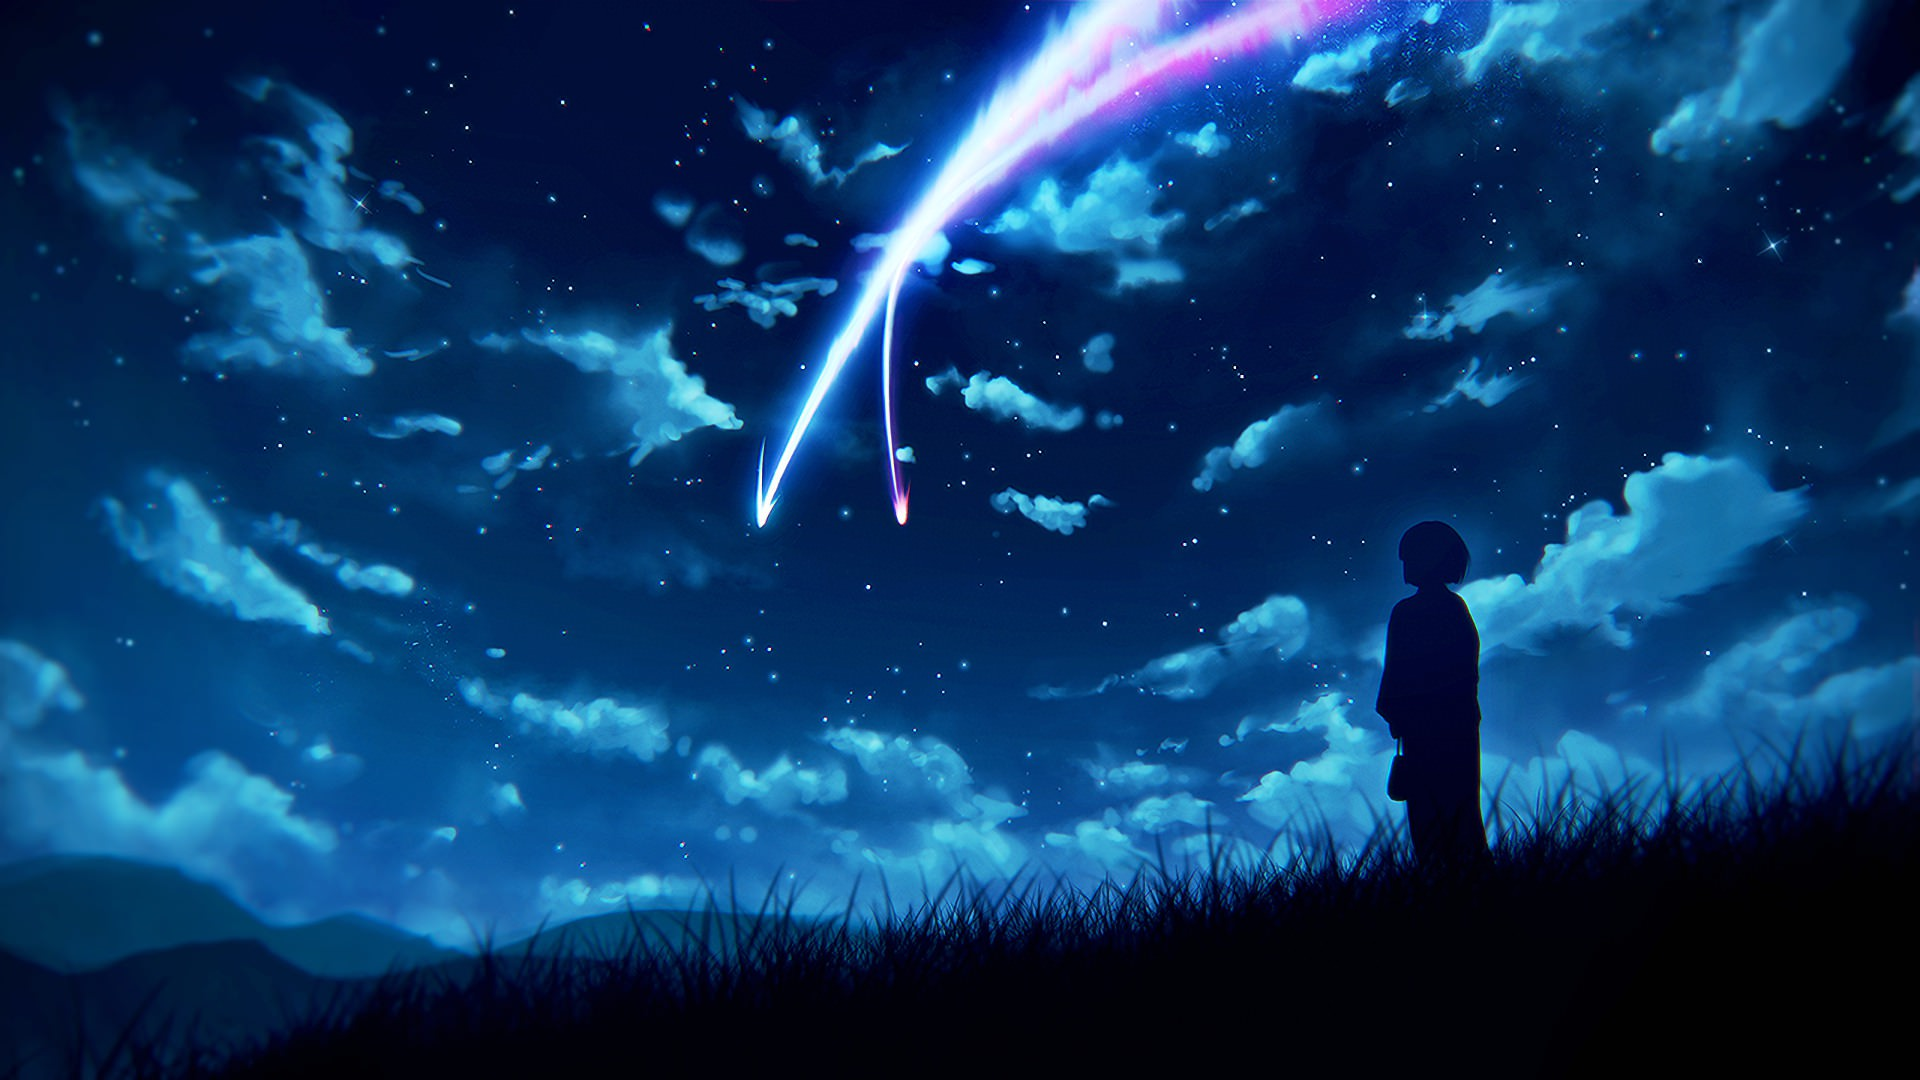 Sky Anime Anime Night Scenery Wallpapers Top Free Anime Night Scenery